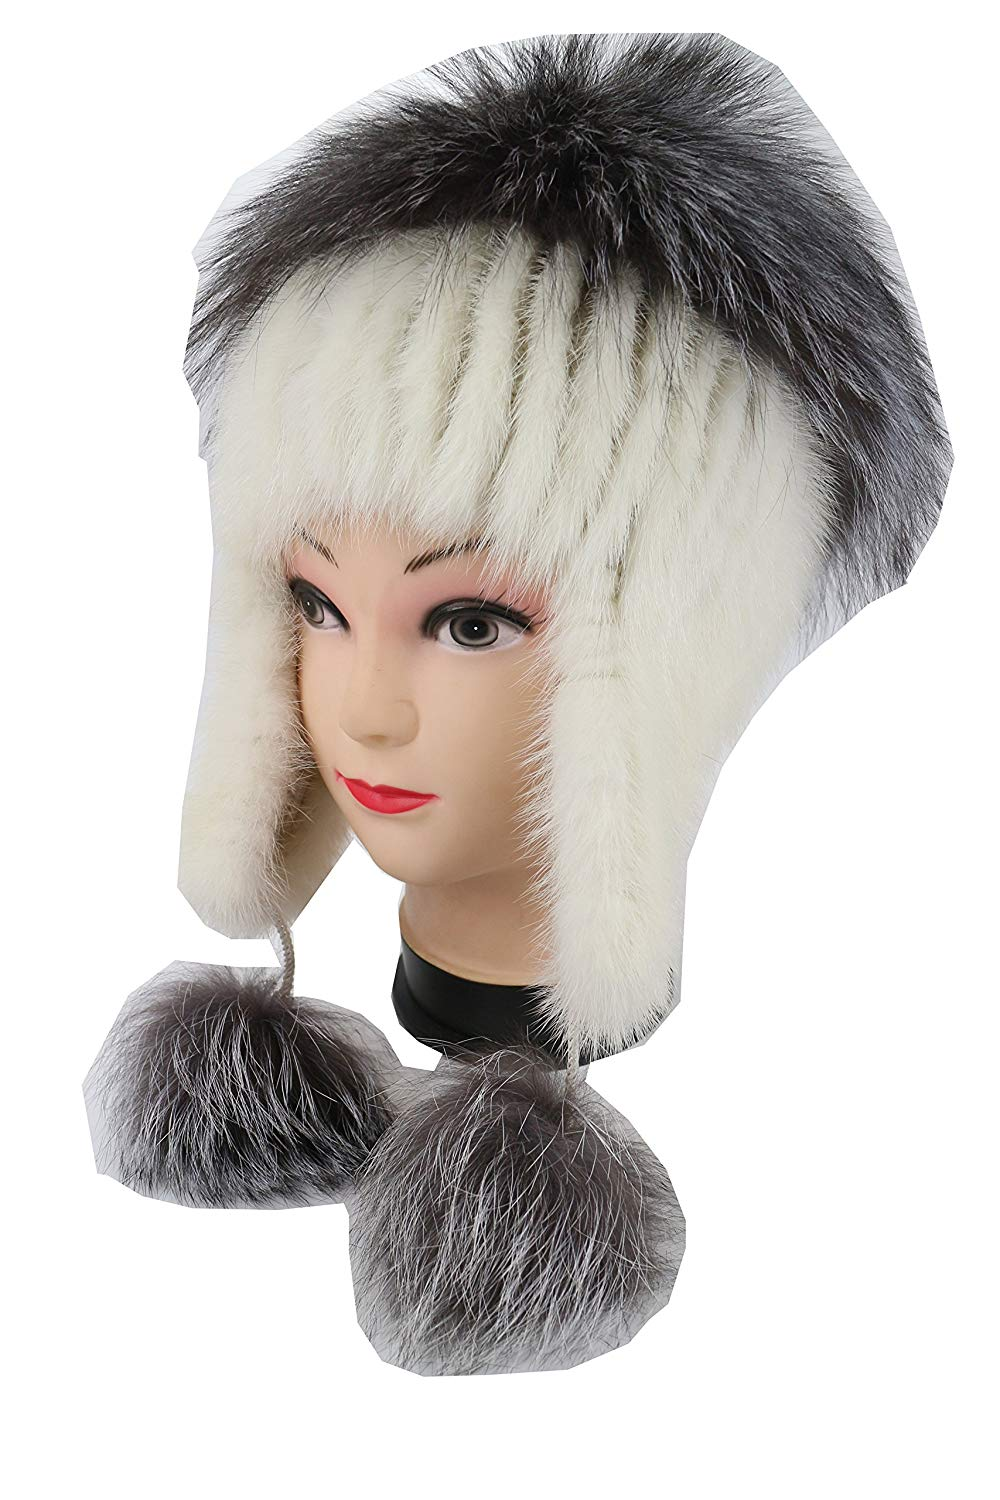 Ysting Real Knit Mink Fur Hat Silver Fox Fur Pom Ear Protection Cap Fur Beanie